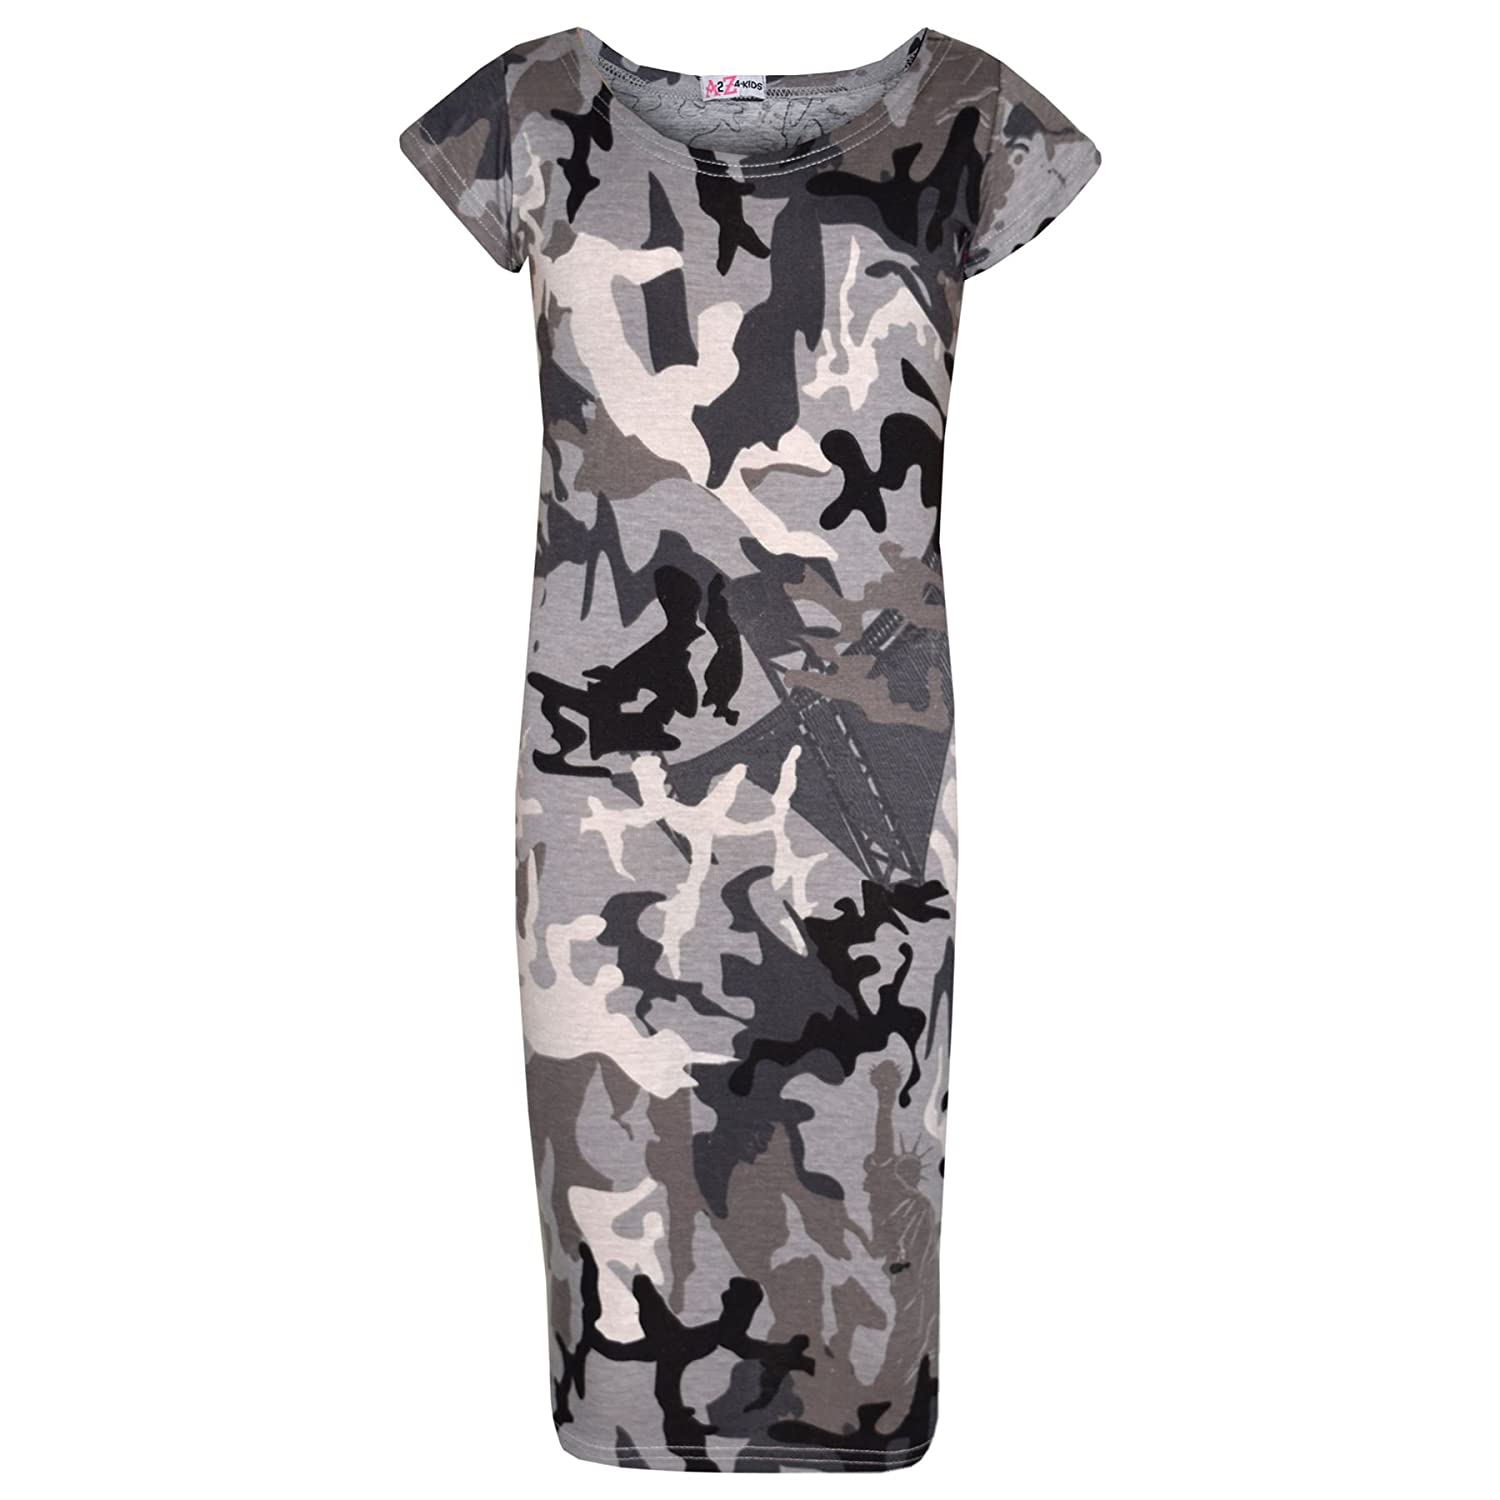 Girls Top Kids Camouflage Print Crop Top Legging Midi Dress New Age 7-13 Years